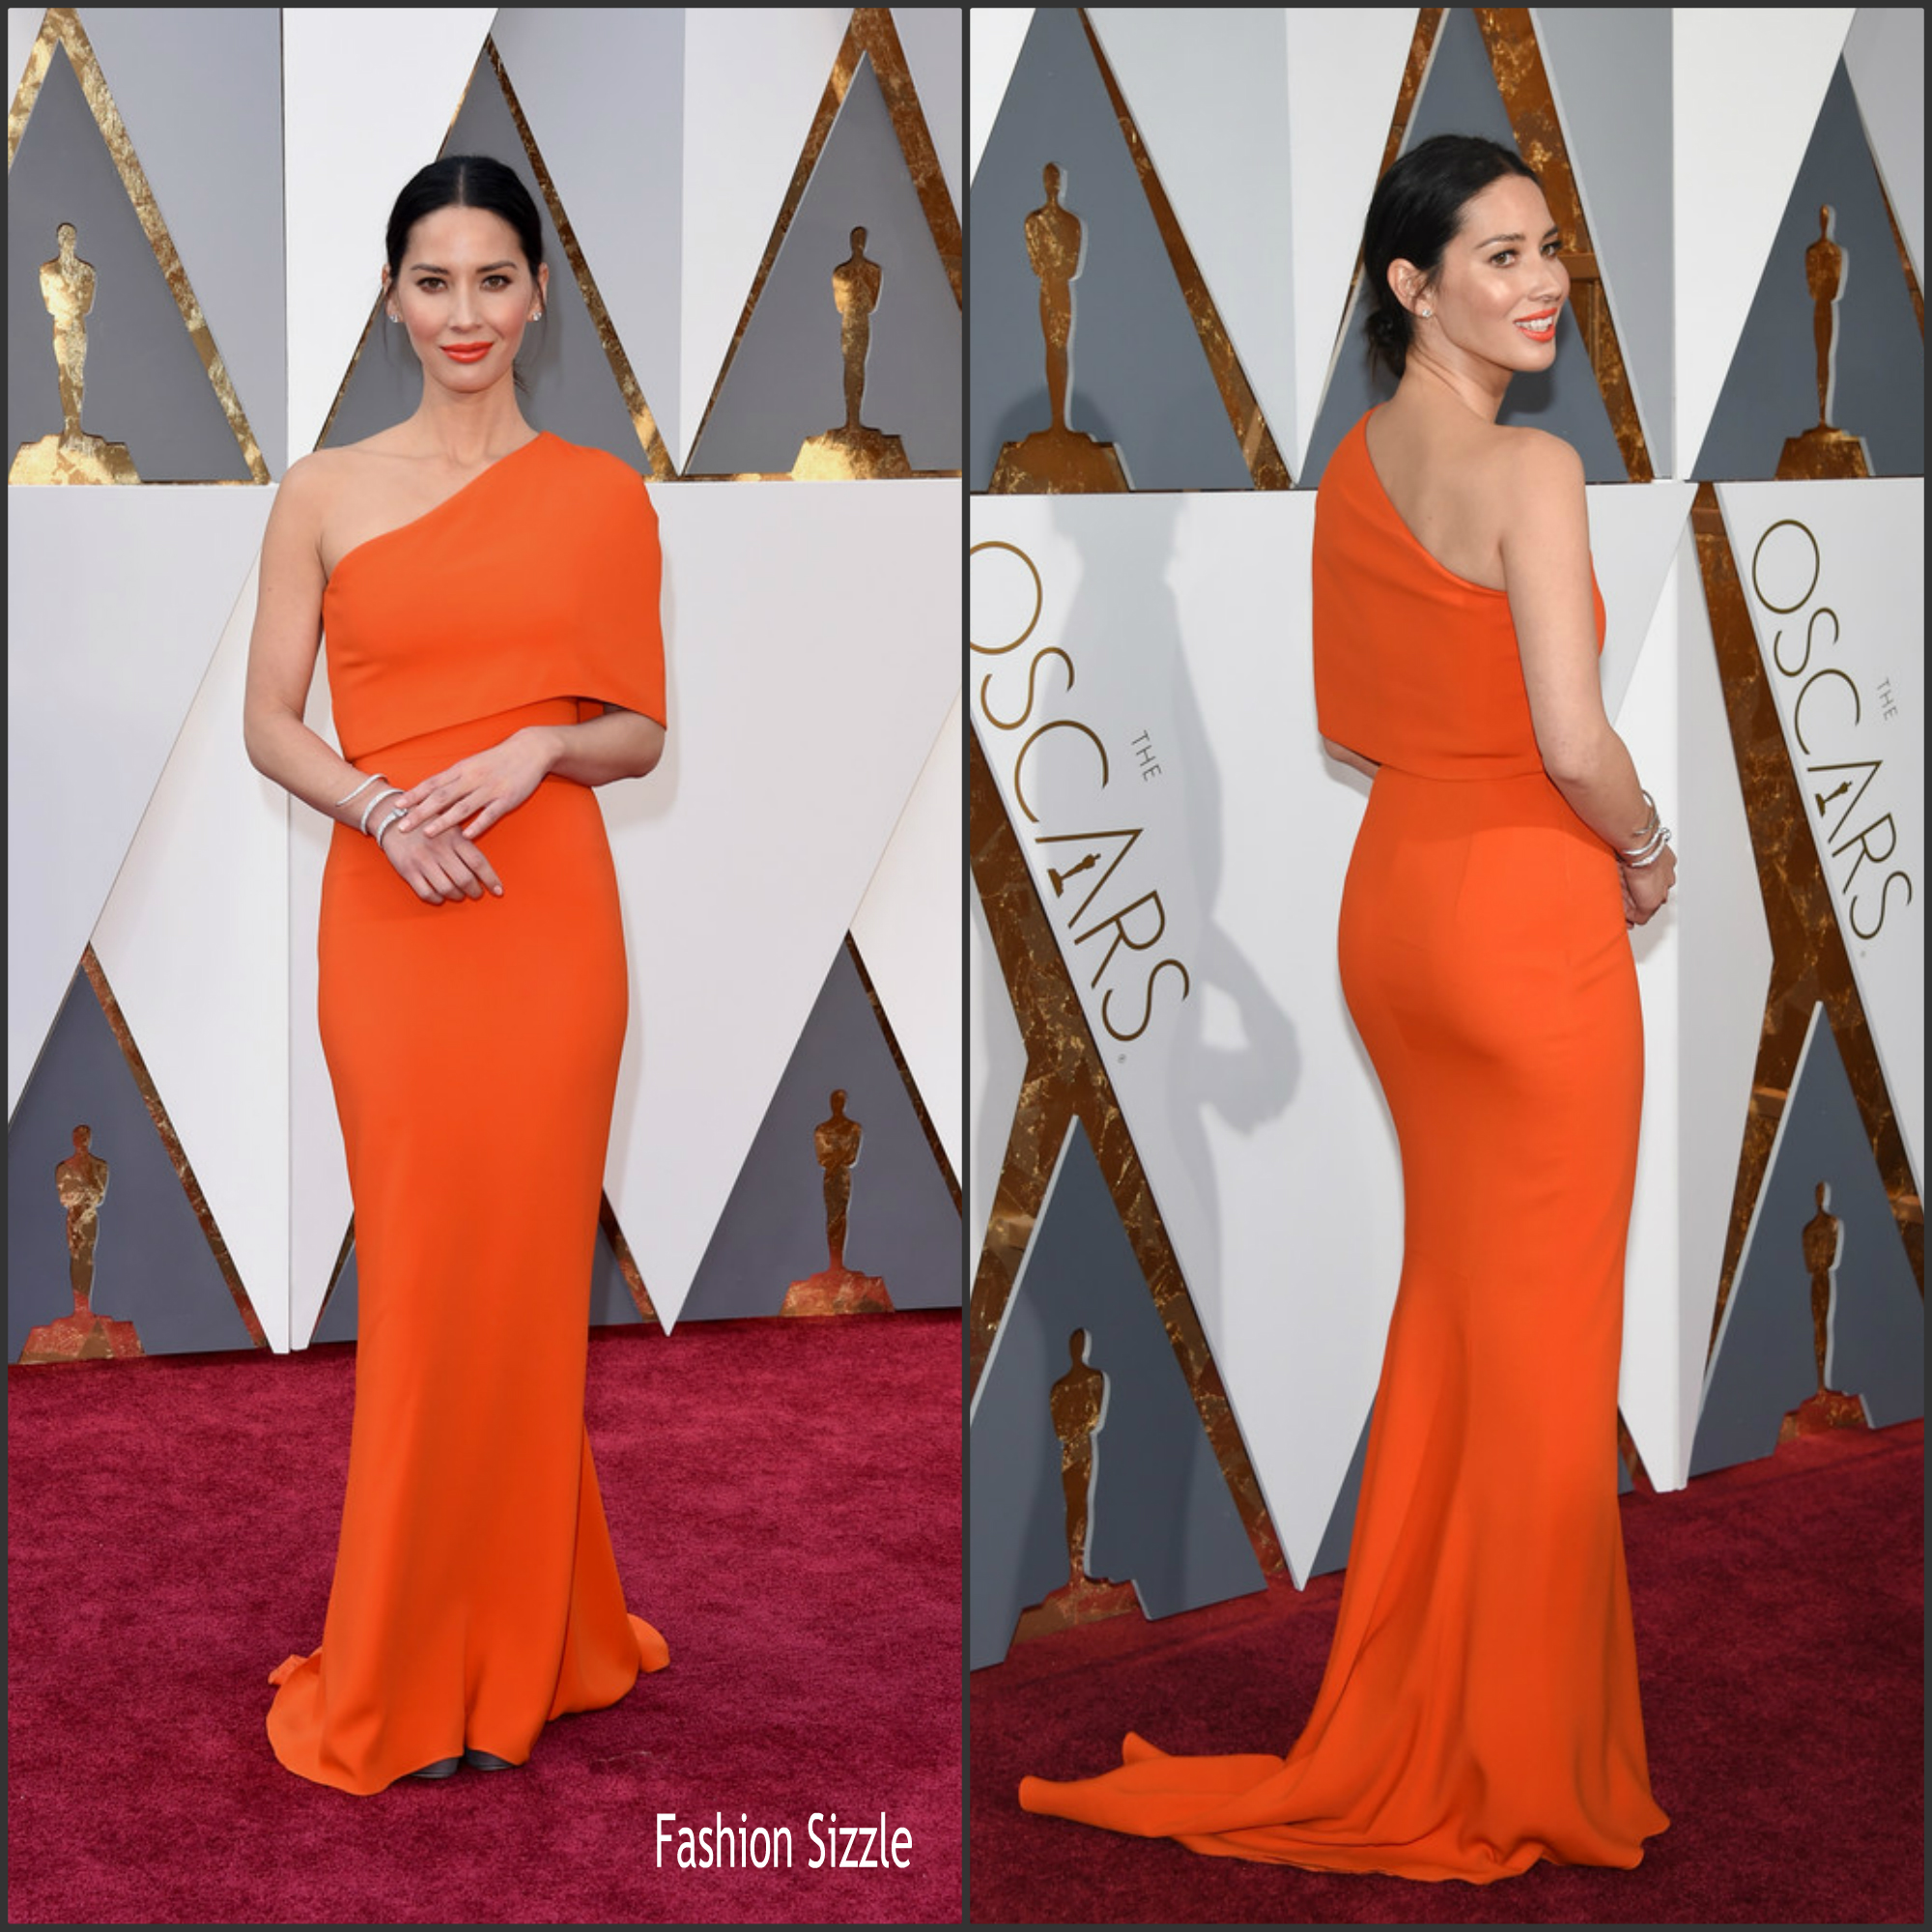 olivia-munn-in-stella-mccartney-2016-academy-awards (1)